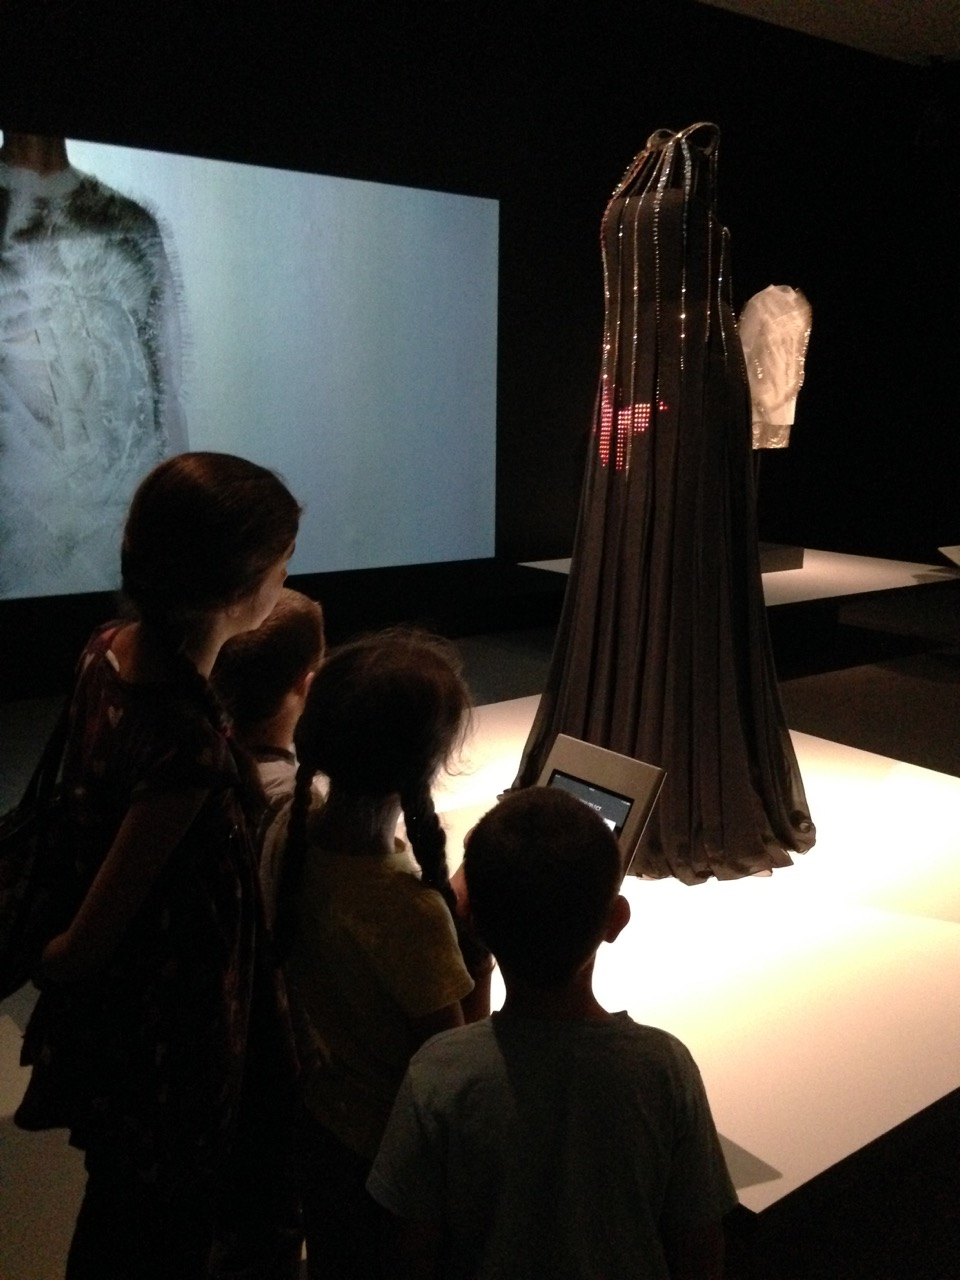 A dress with digital lights display controlled from a tablet. In the #techstyle exhibit